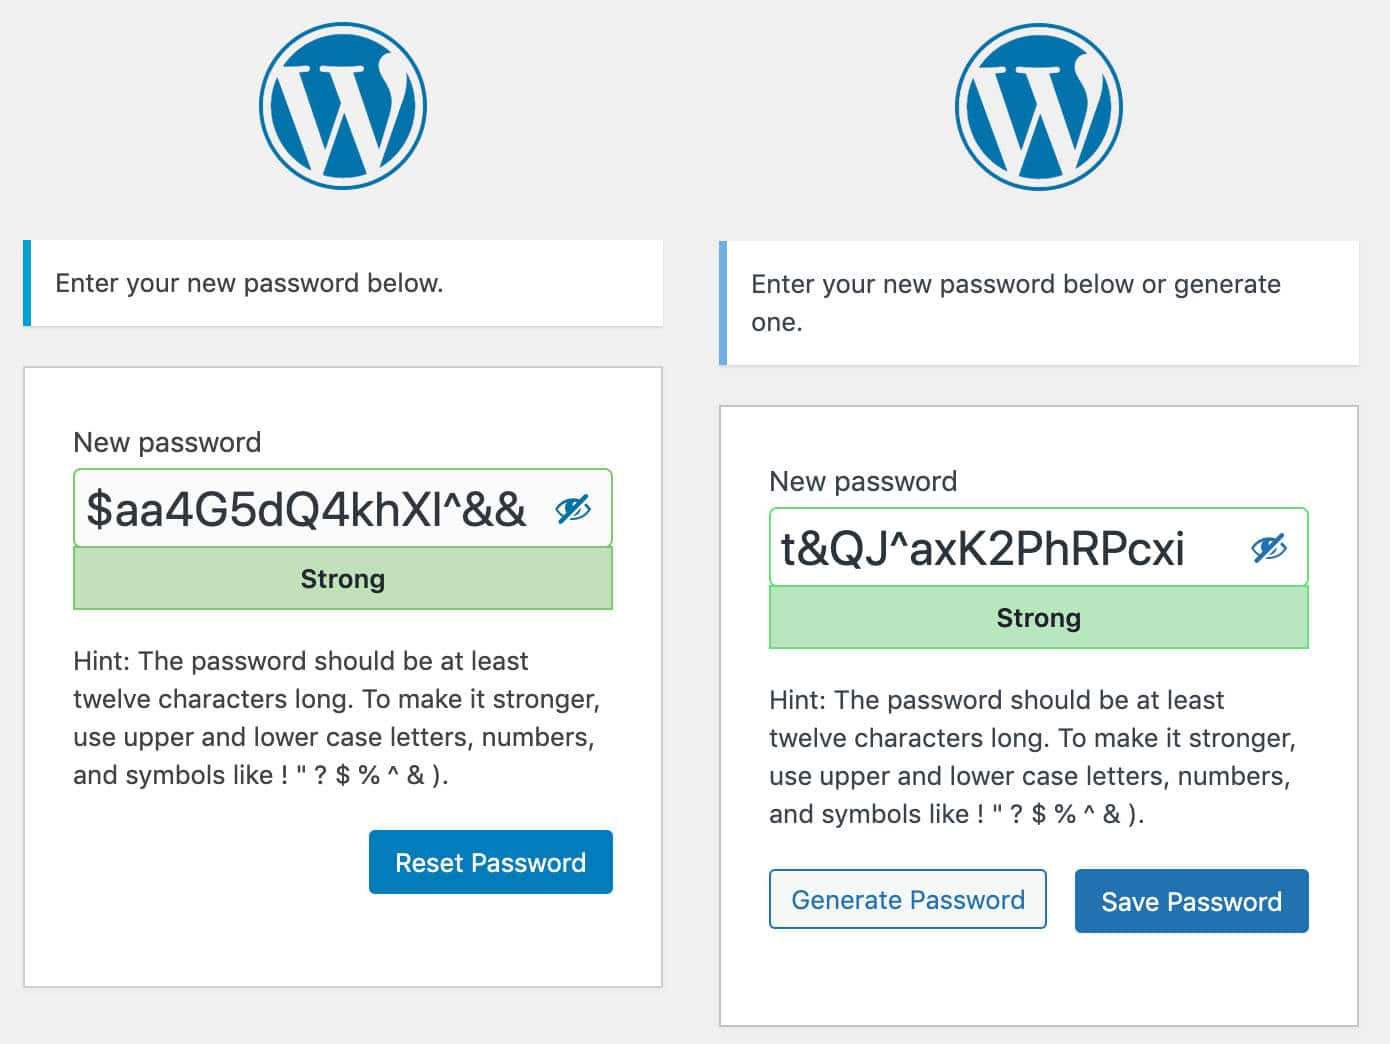 Reset Password screen in WordPress 5.7